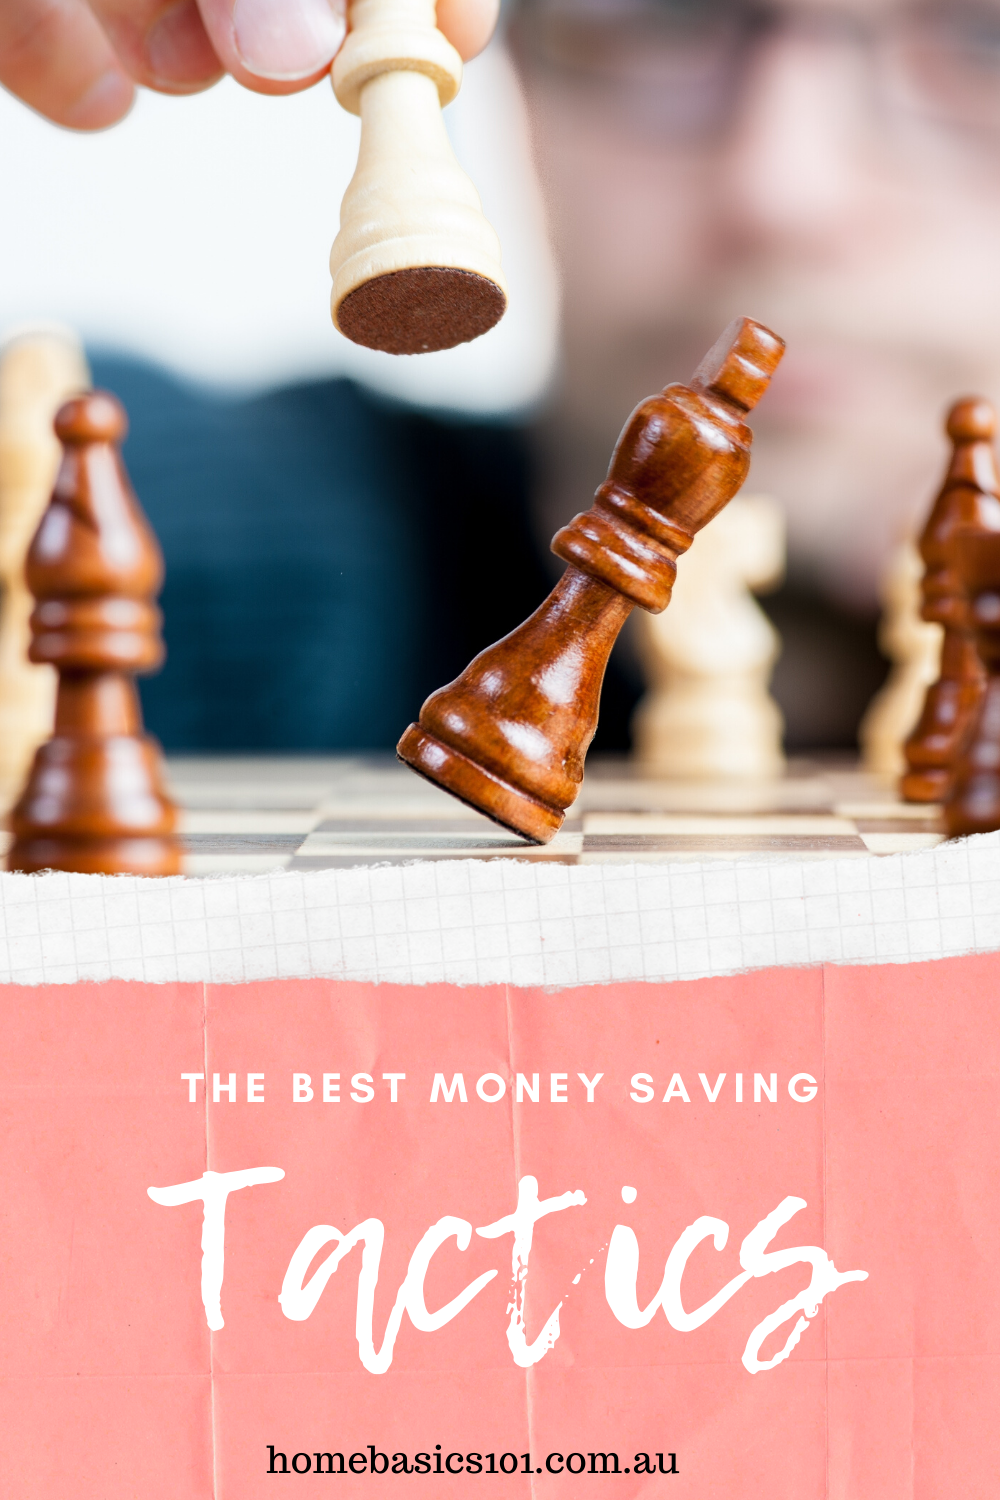 Learn great tactics to Managing your Finances